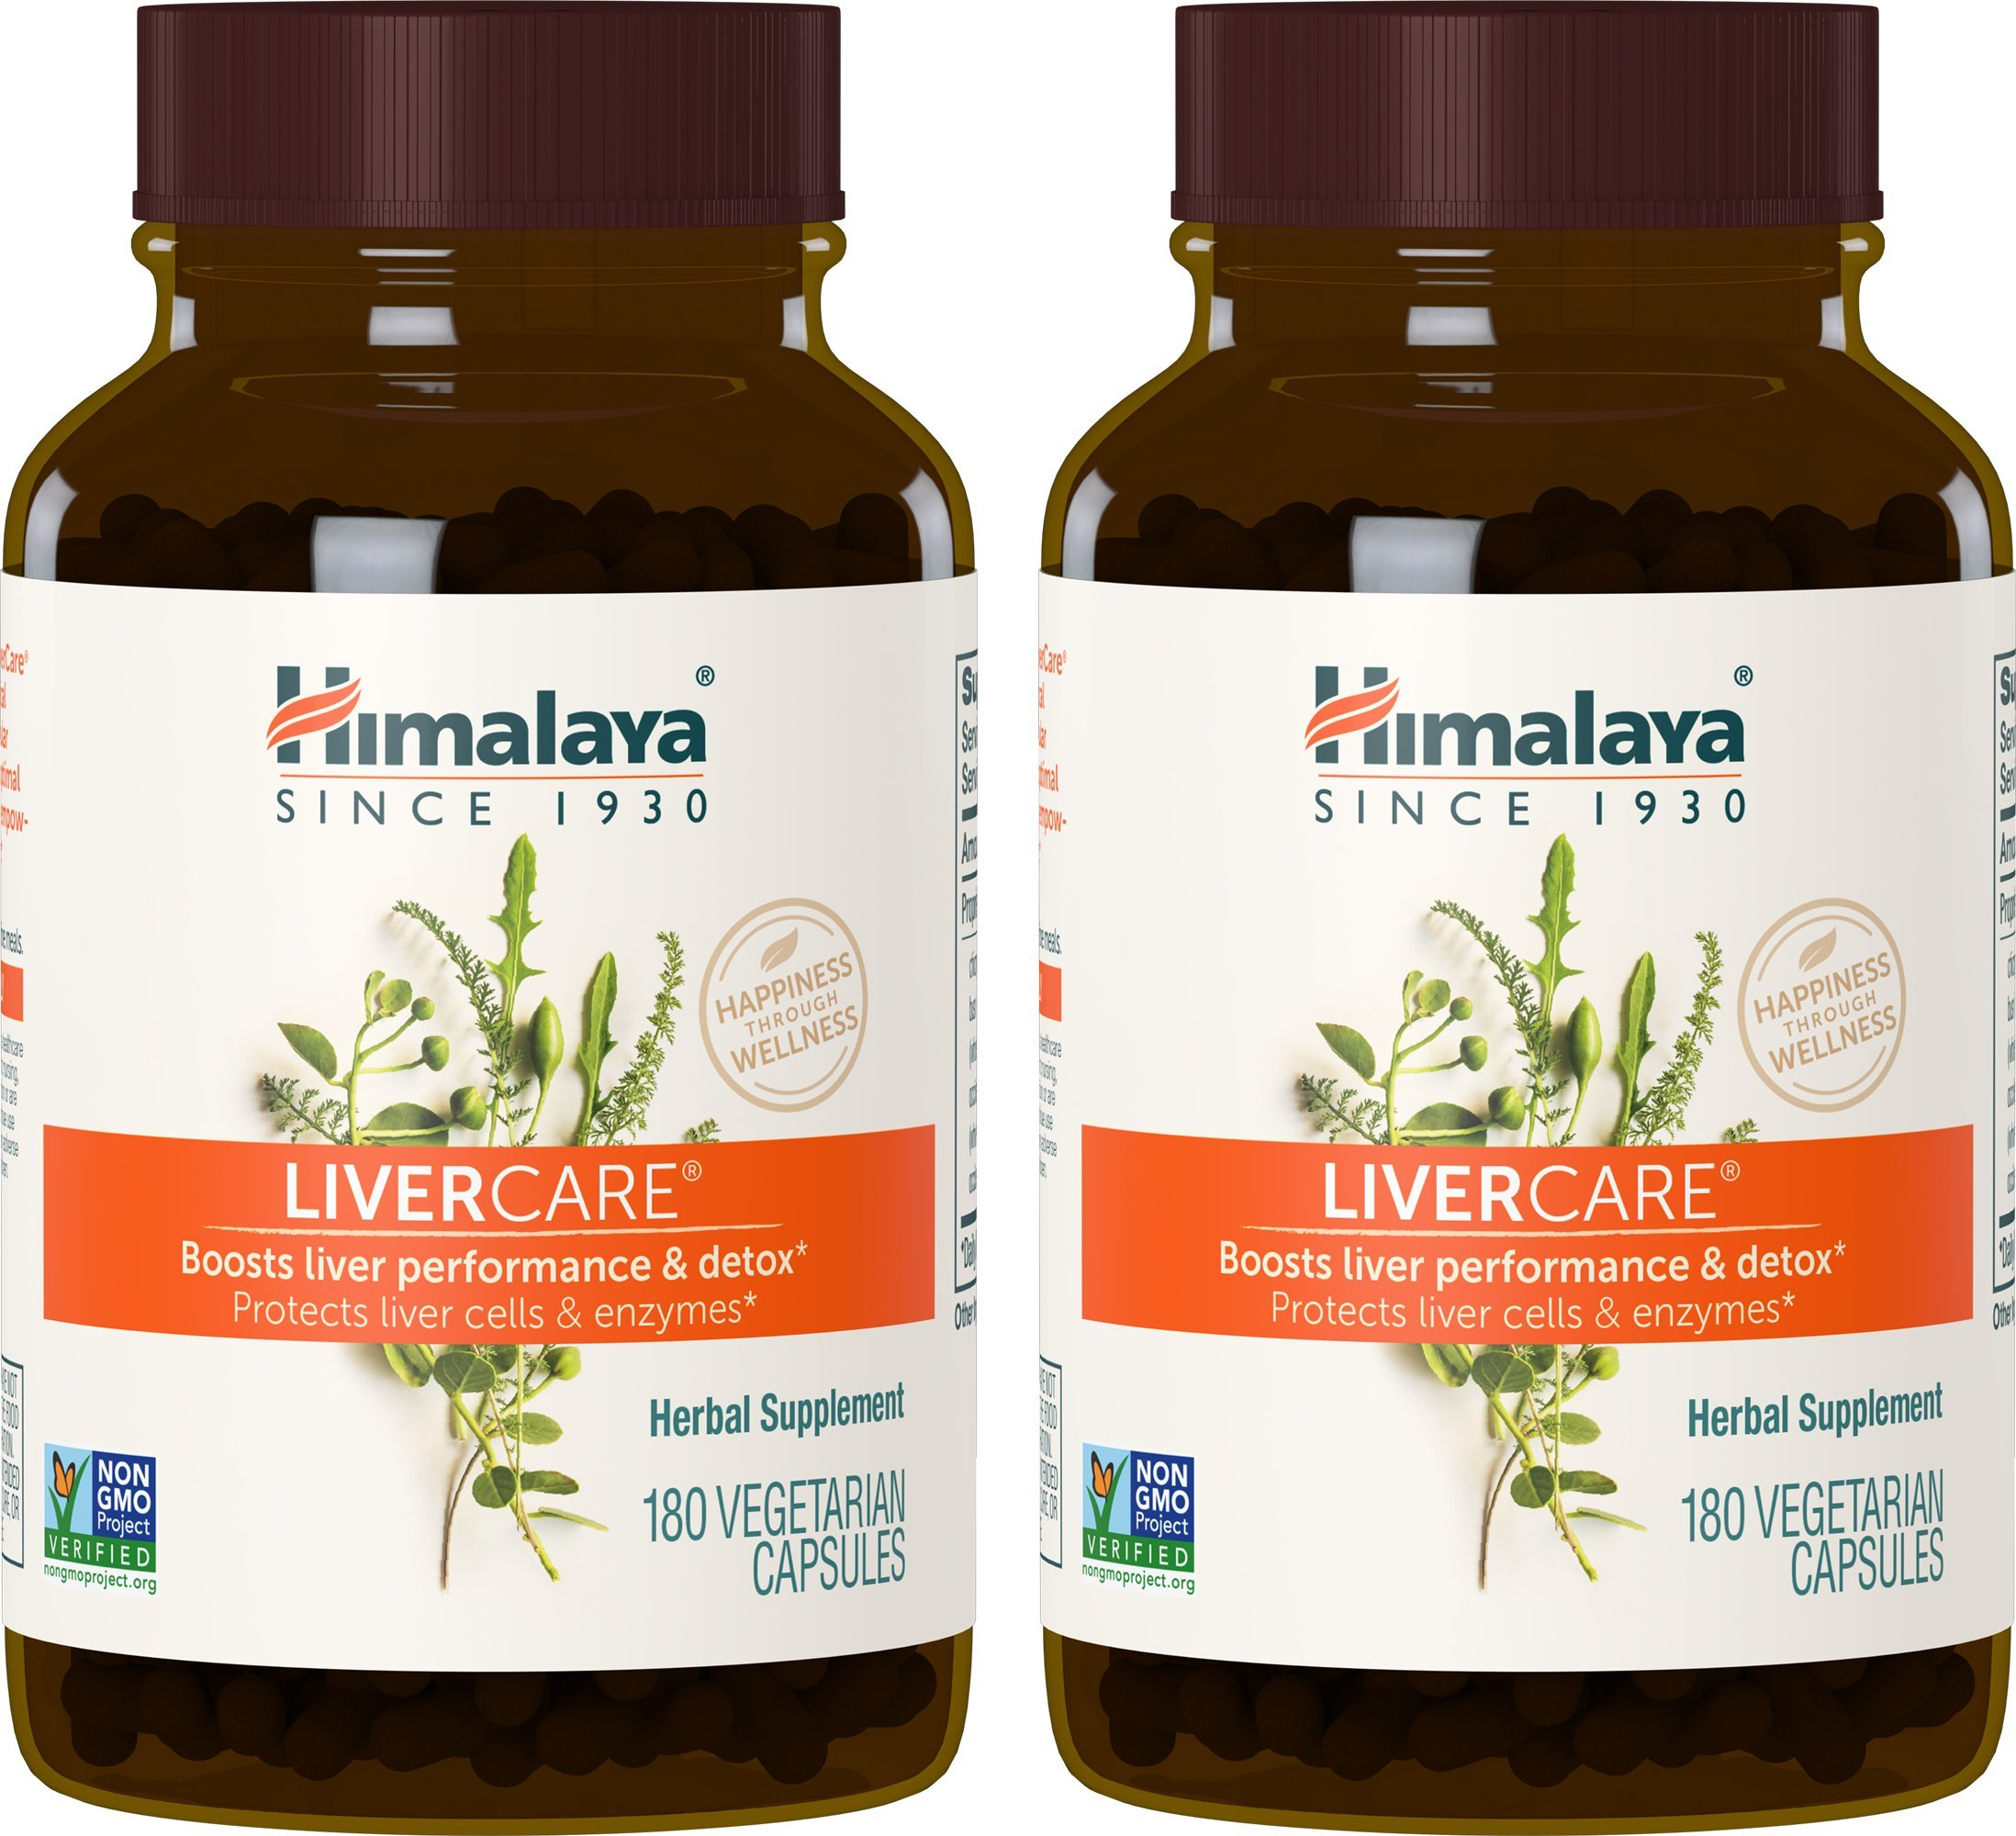 Himalaya LiverCare (2 Pack) 180 VCaps for Liver Detox, Liver Cleanse and Regeneration 375mg by Himalaya Herbal Healthcare (Image #1)